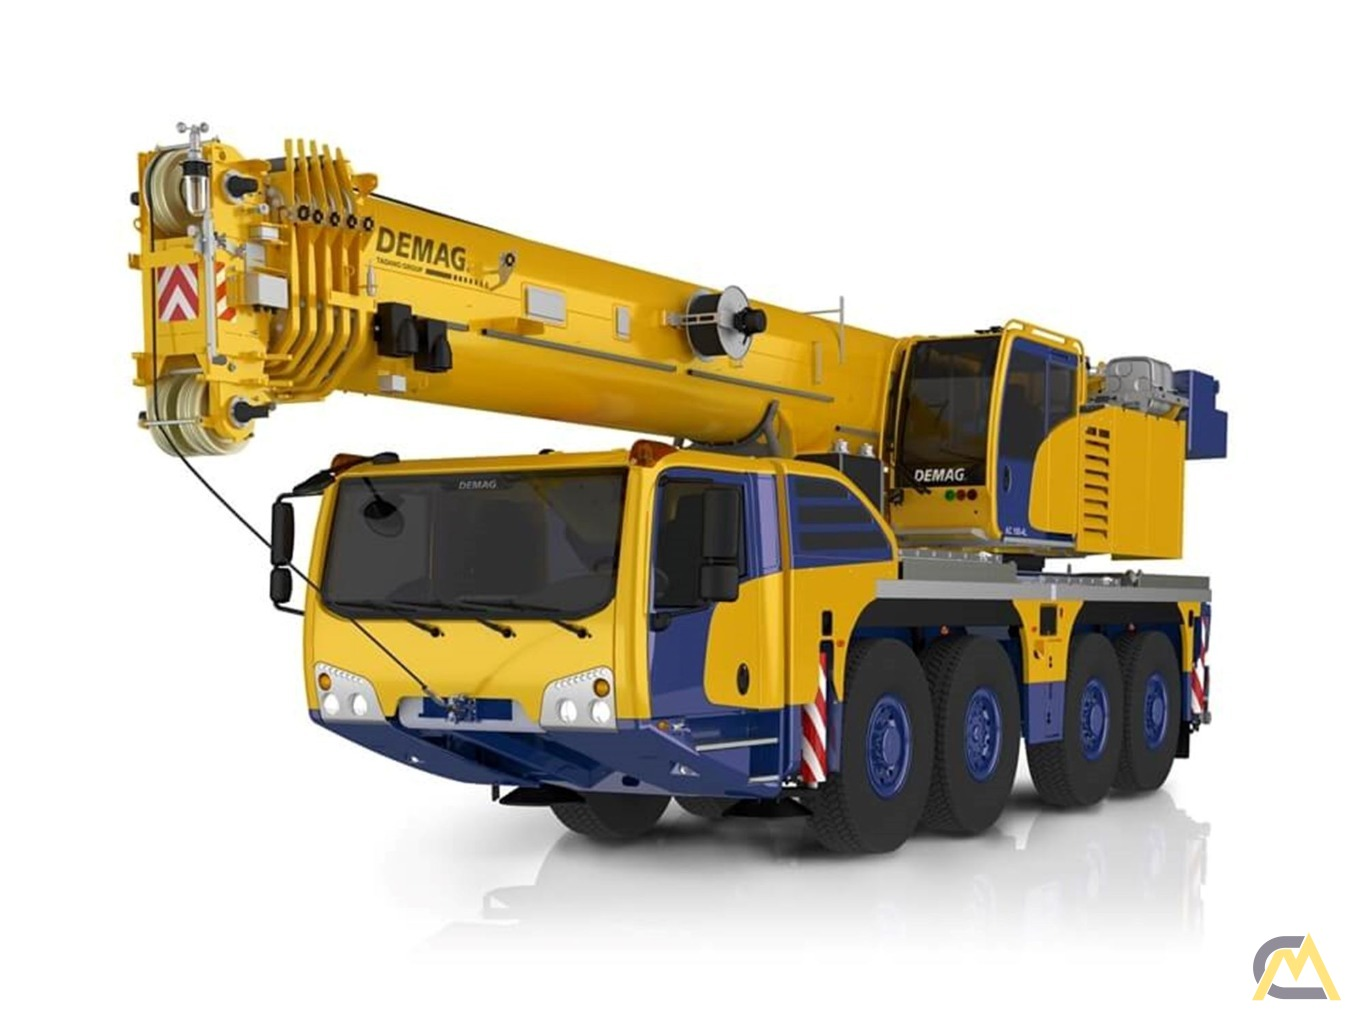 NEW 2021 Tadano Demag AC 100-4L 120-Ton All Terrain Crane 0